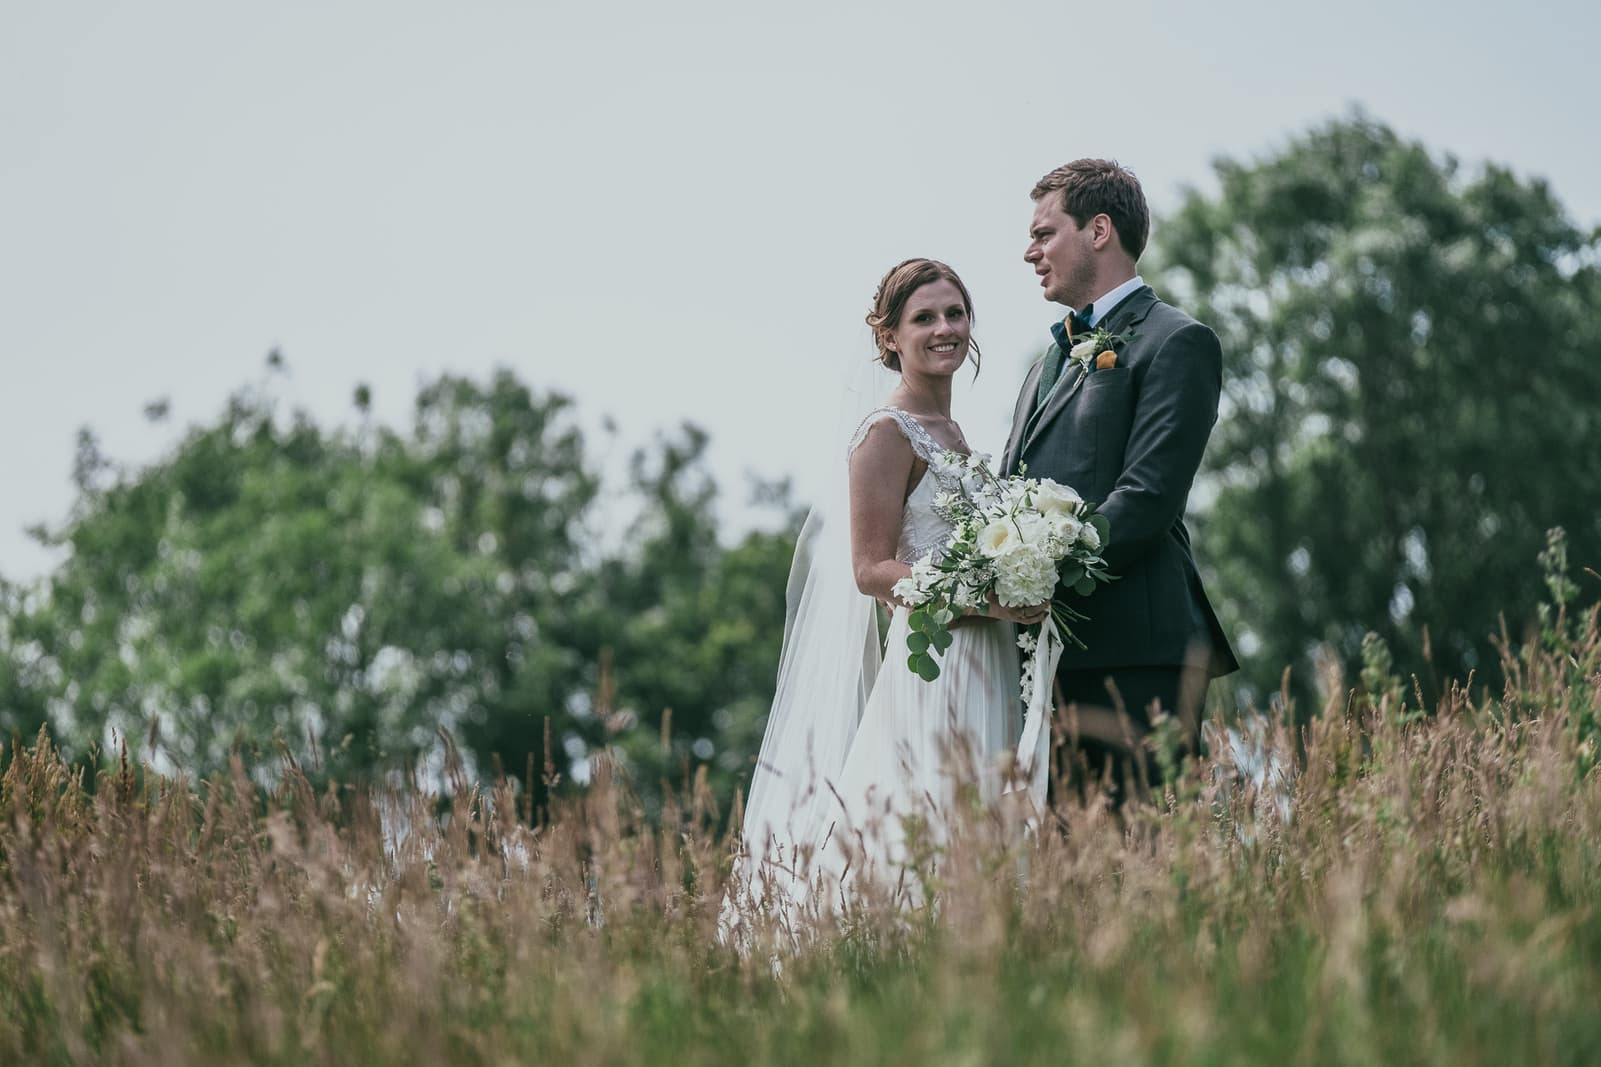 Wedding Photography at The Green